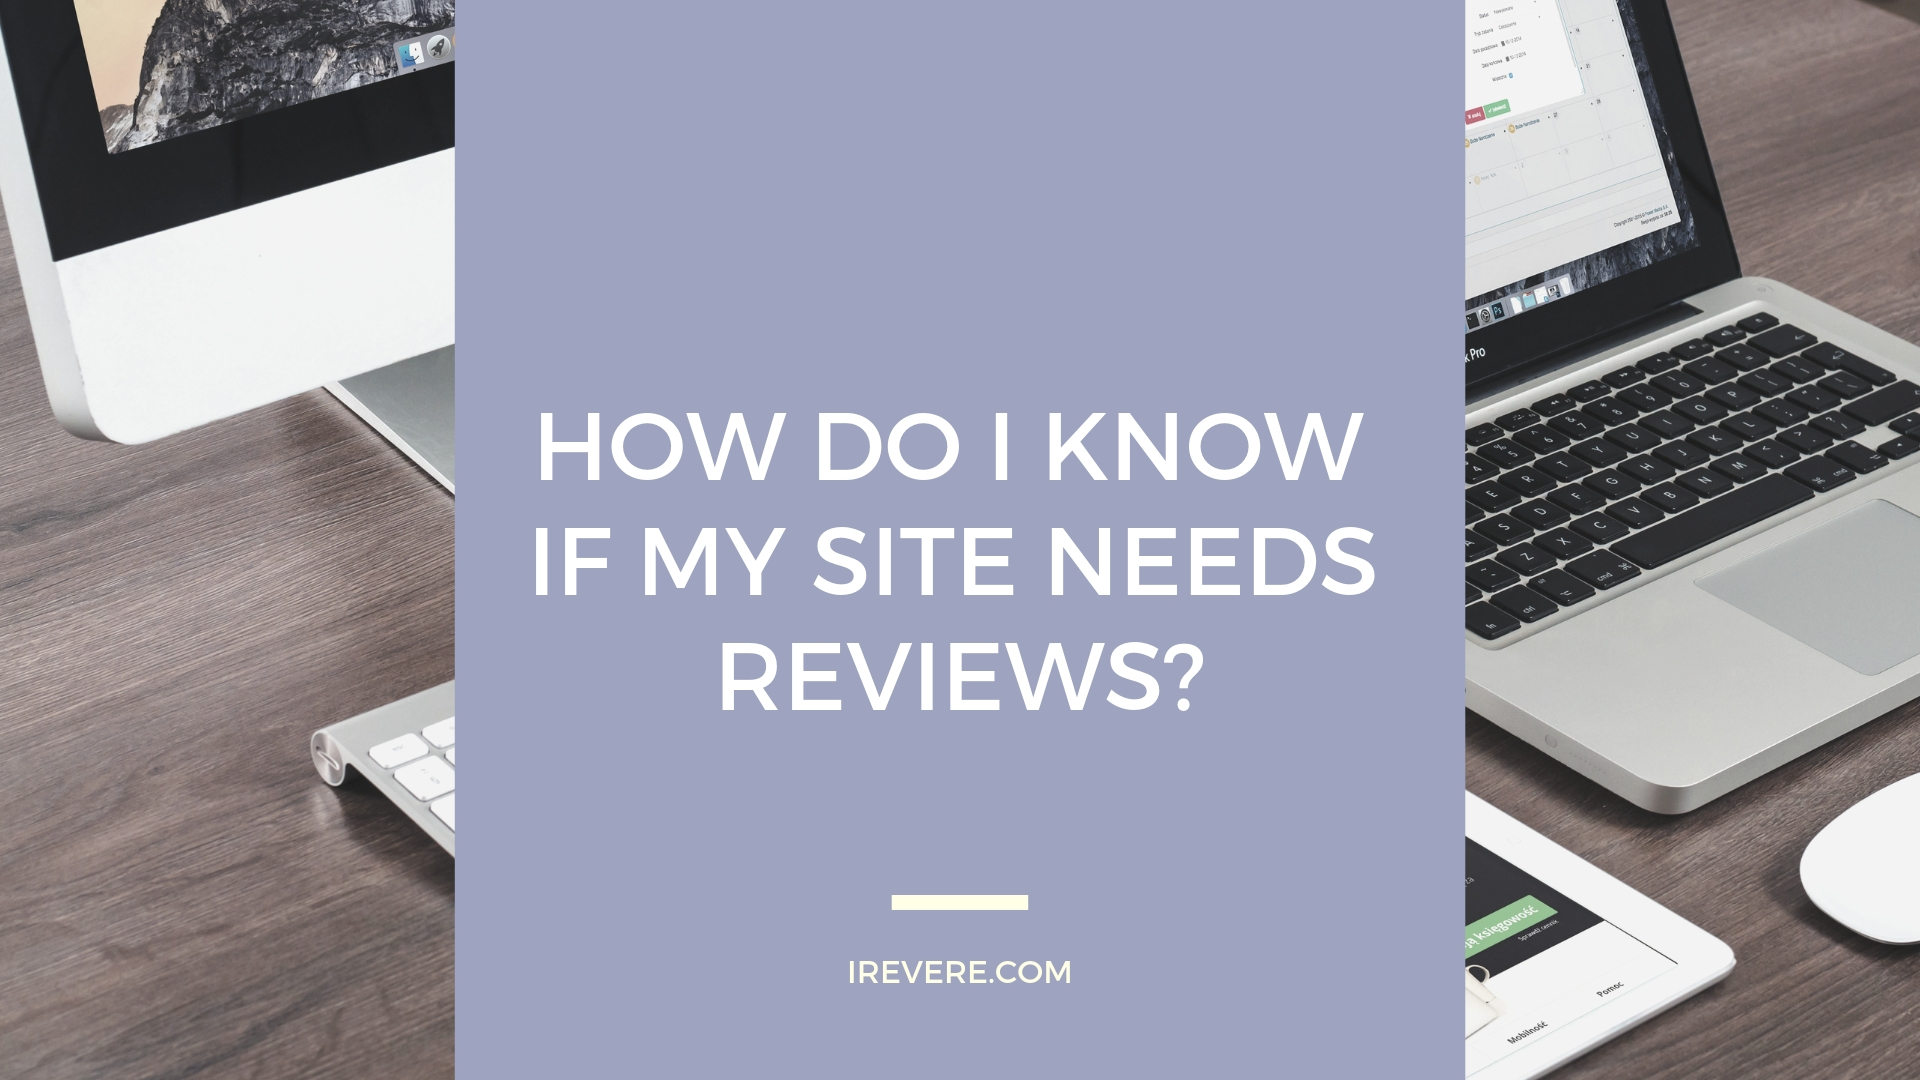 How Do I Know if My Site Needs Reviews?